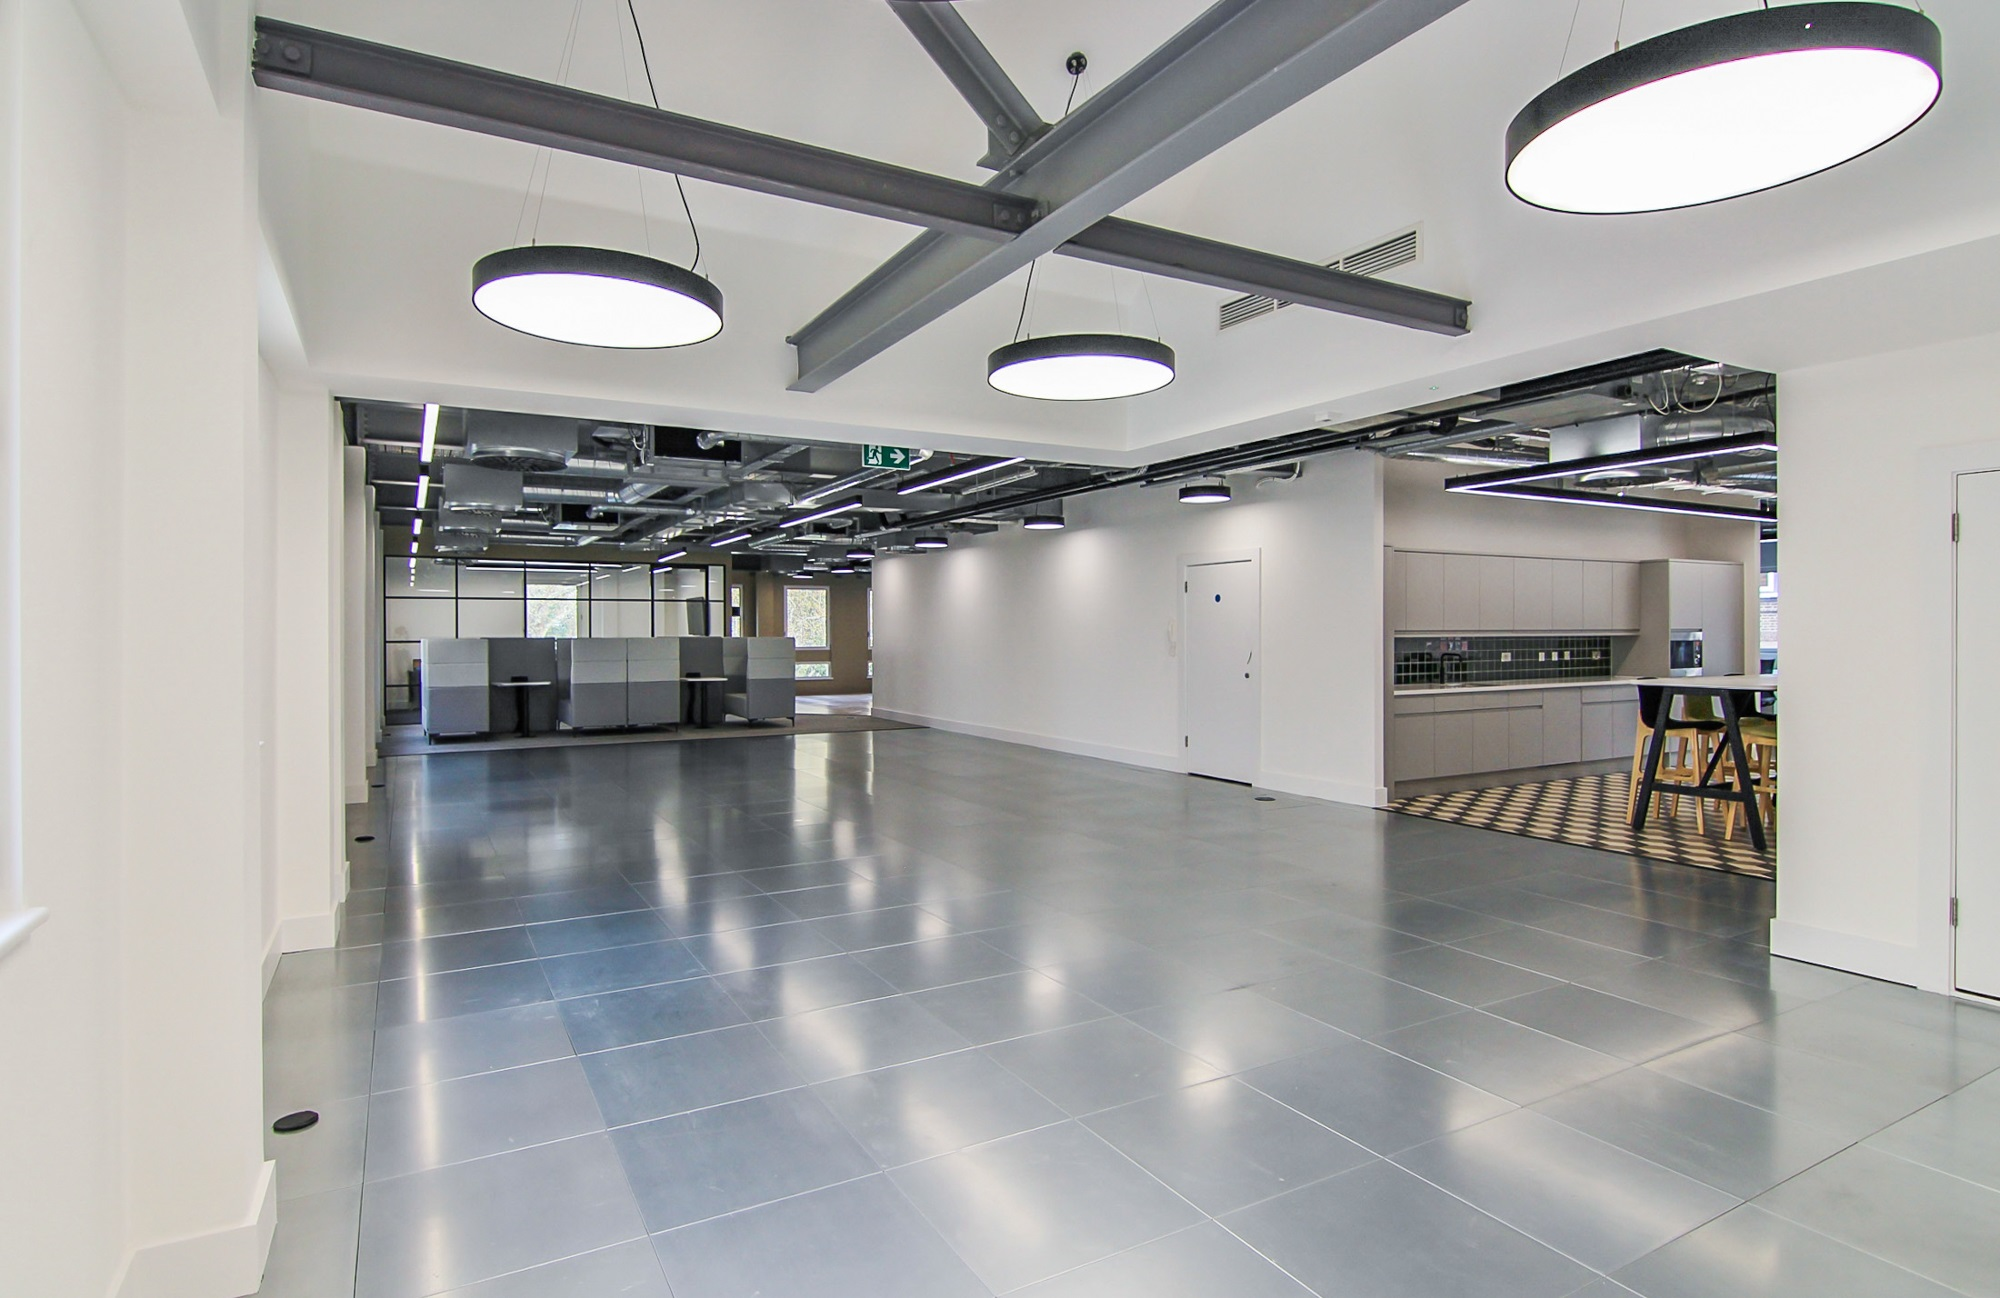 empty office floor with exposed metal and circulars lights